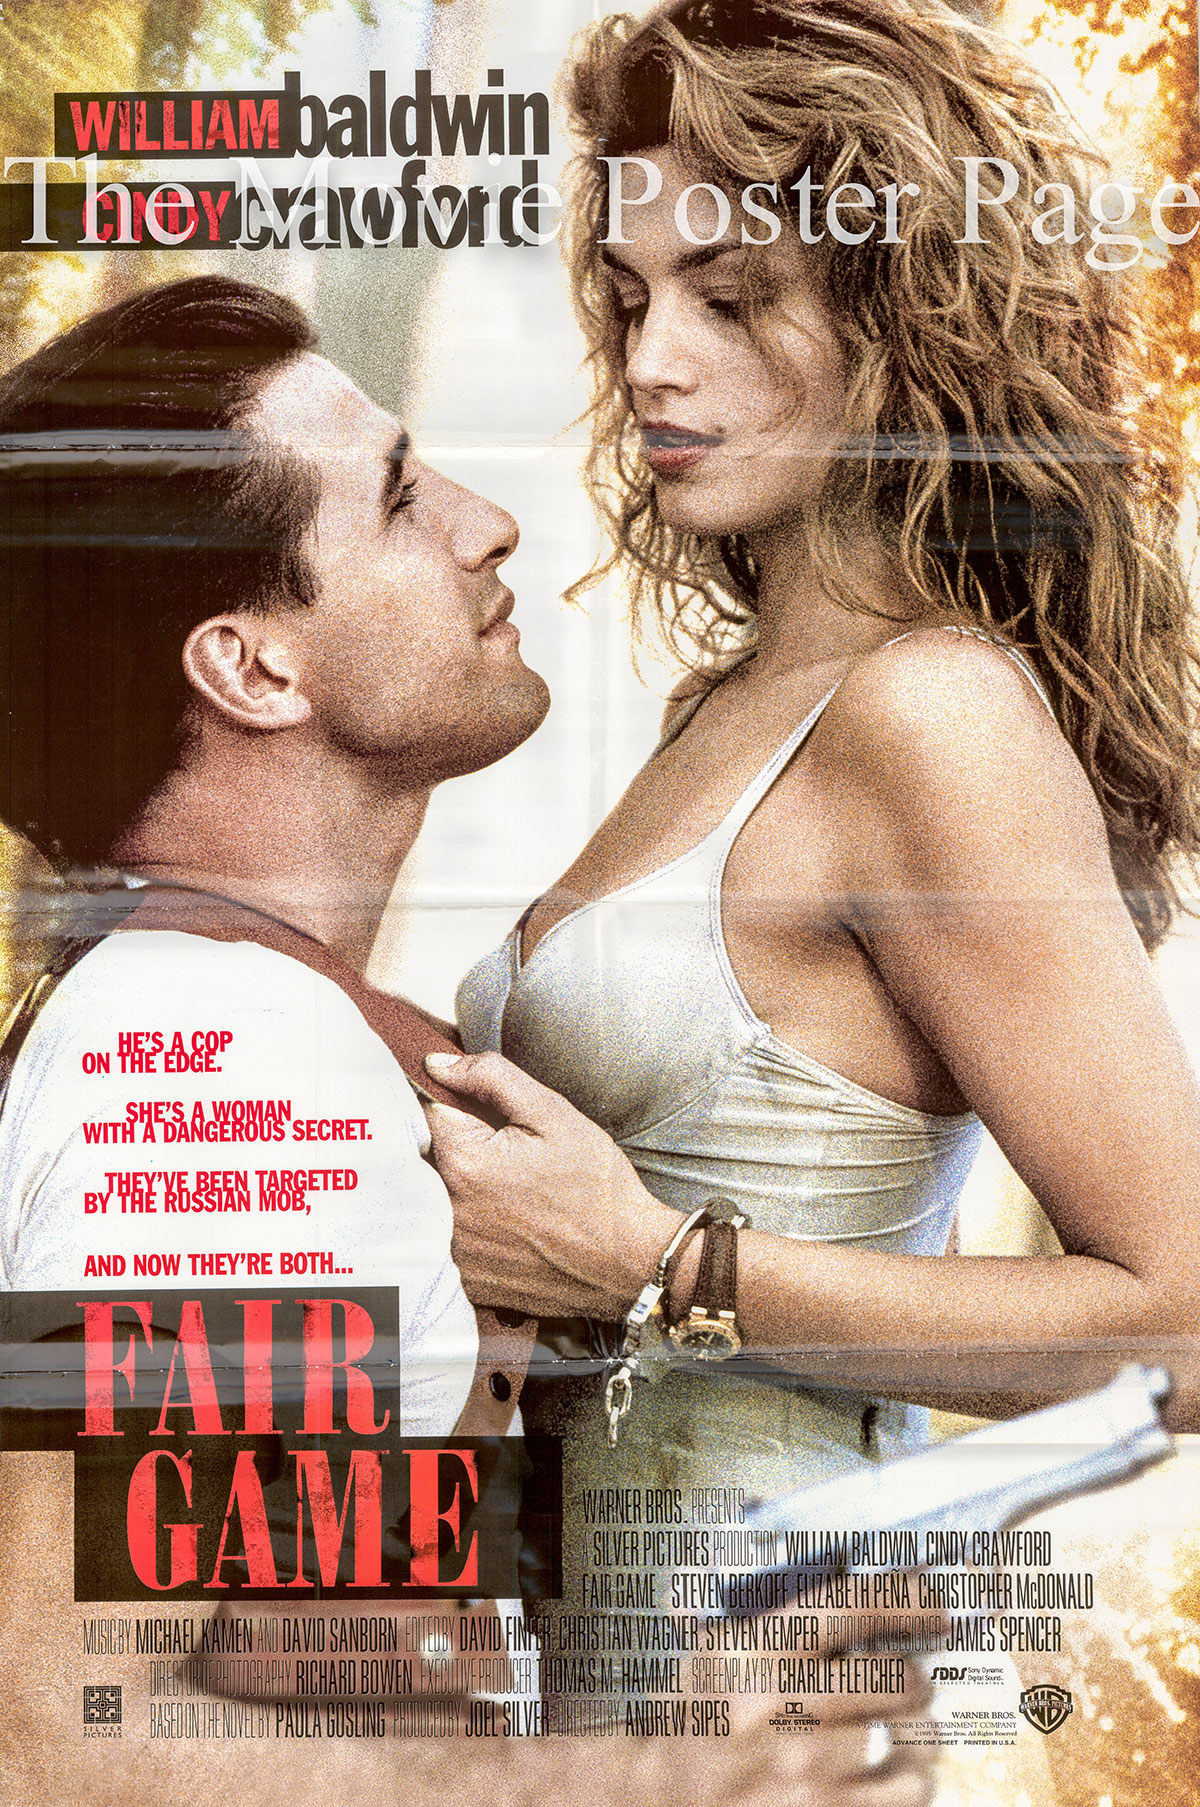 Pictured is a US one-sheet poster for the 1995 Andrew Sipes film Fair Game starring Cindy Crawford.